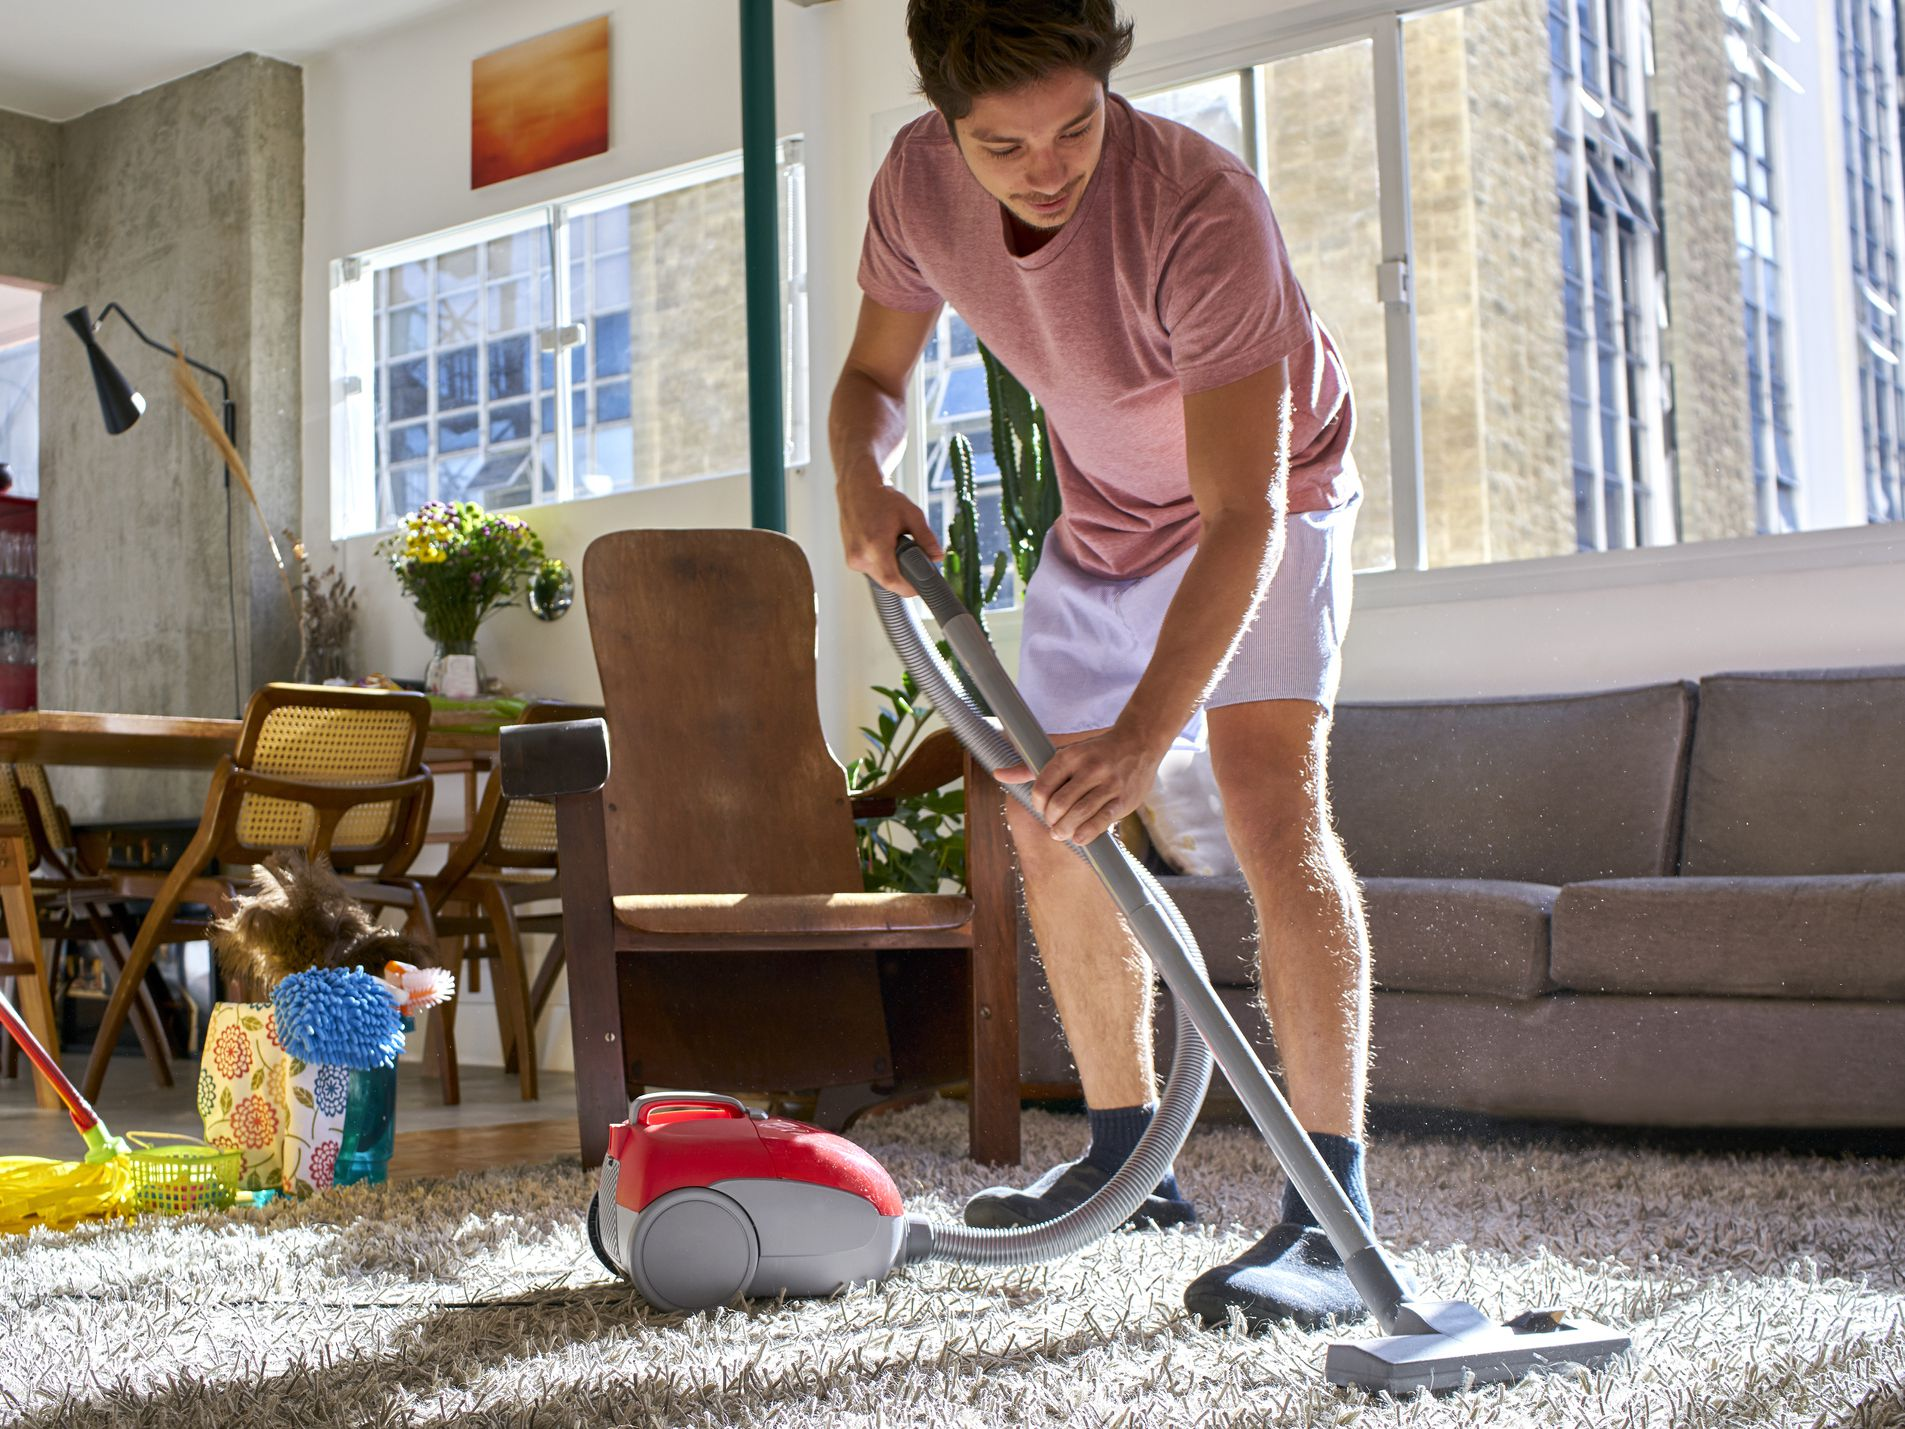 The 8 Best Carpet Cleaning Companies of 2021